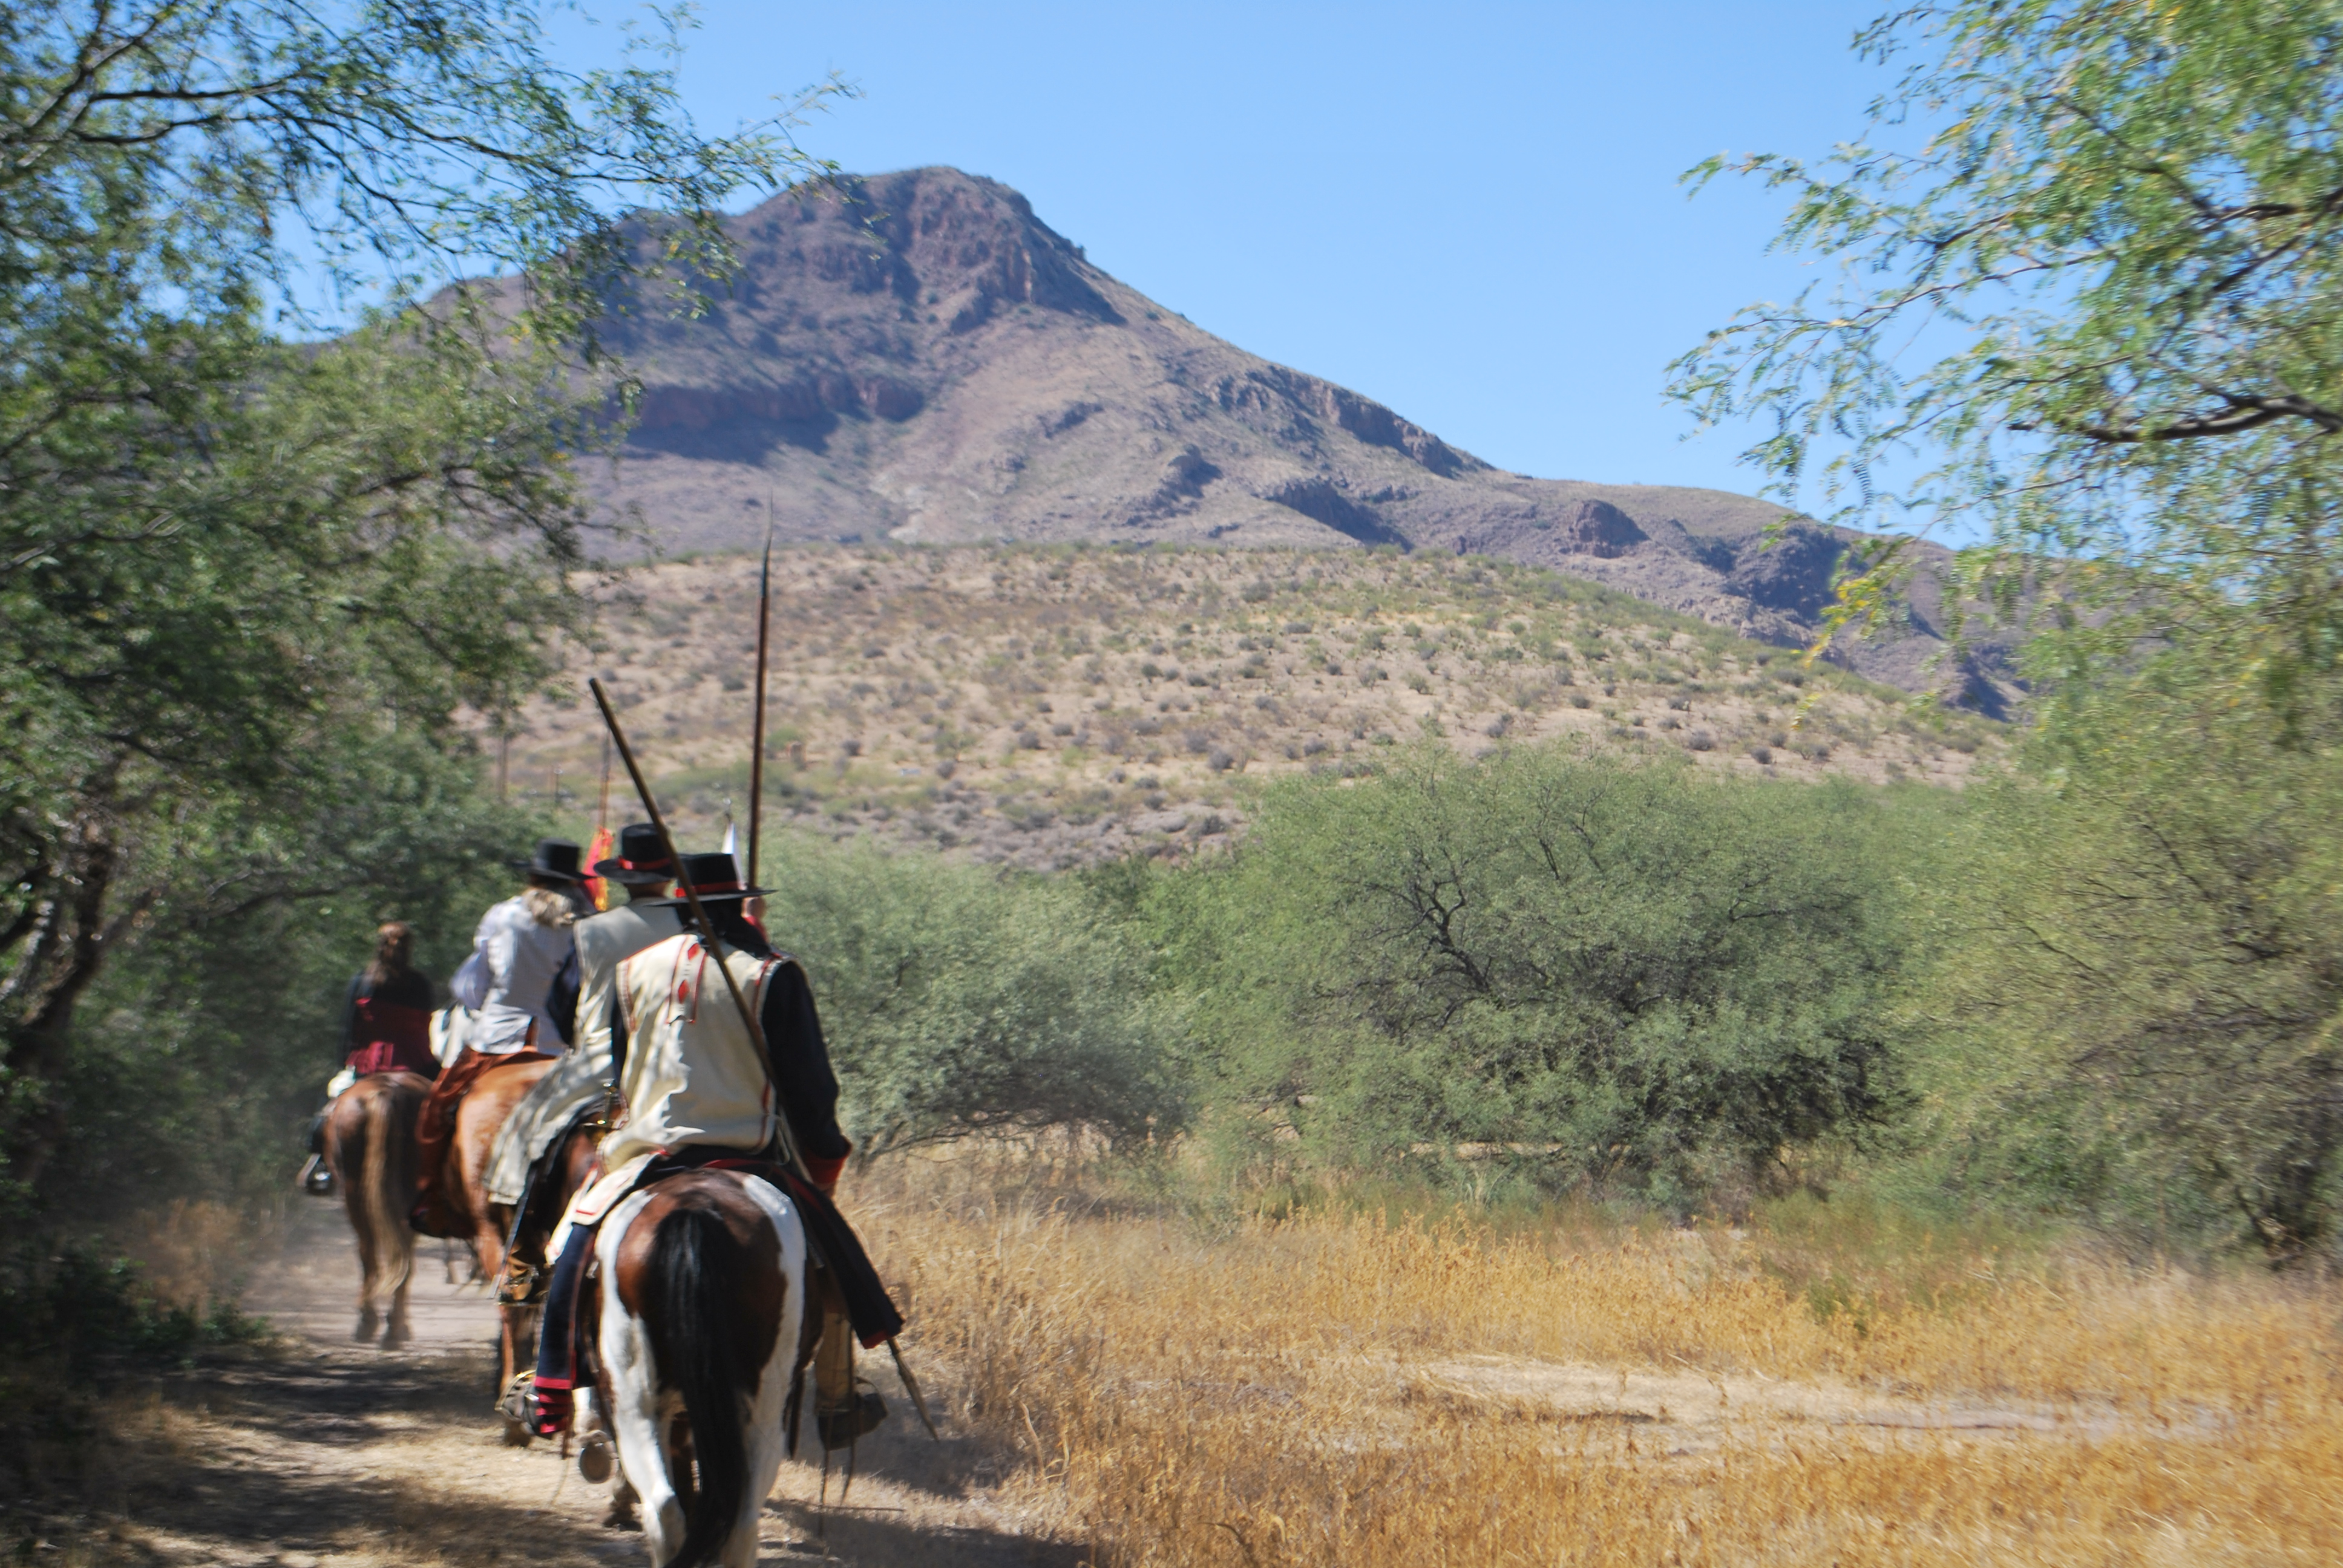 Living History - Mounted colonial Spanish soldiers ride the Anza Trail in a riparian desert landscape towards a mountain.